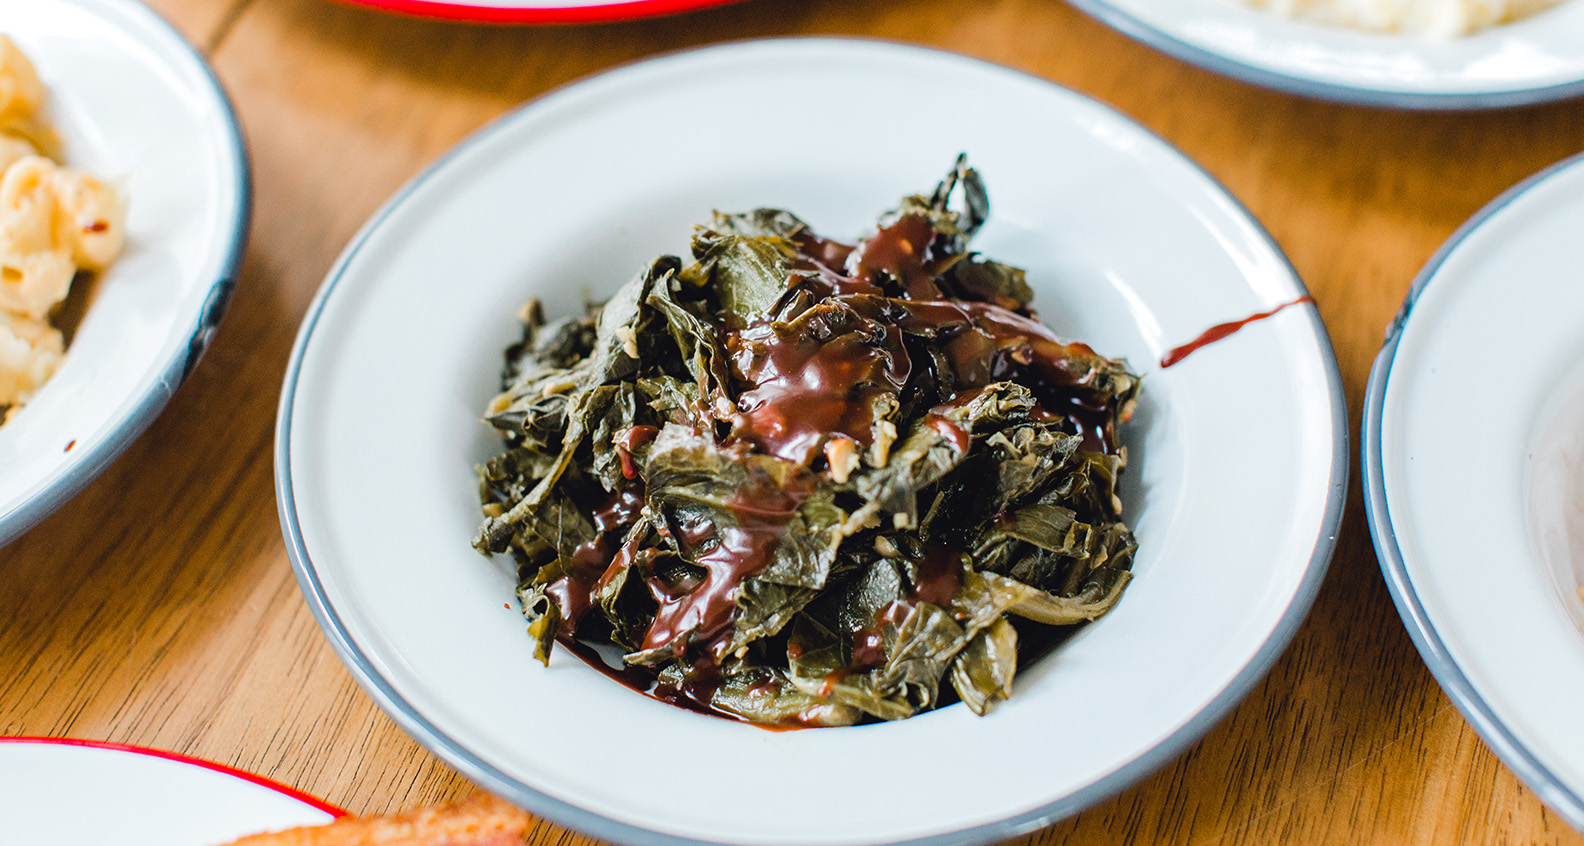 Chocolate-covered collard greens